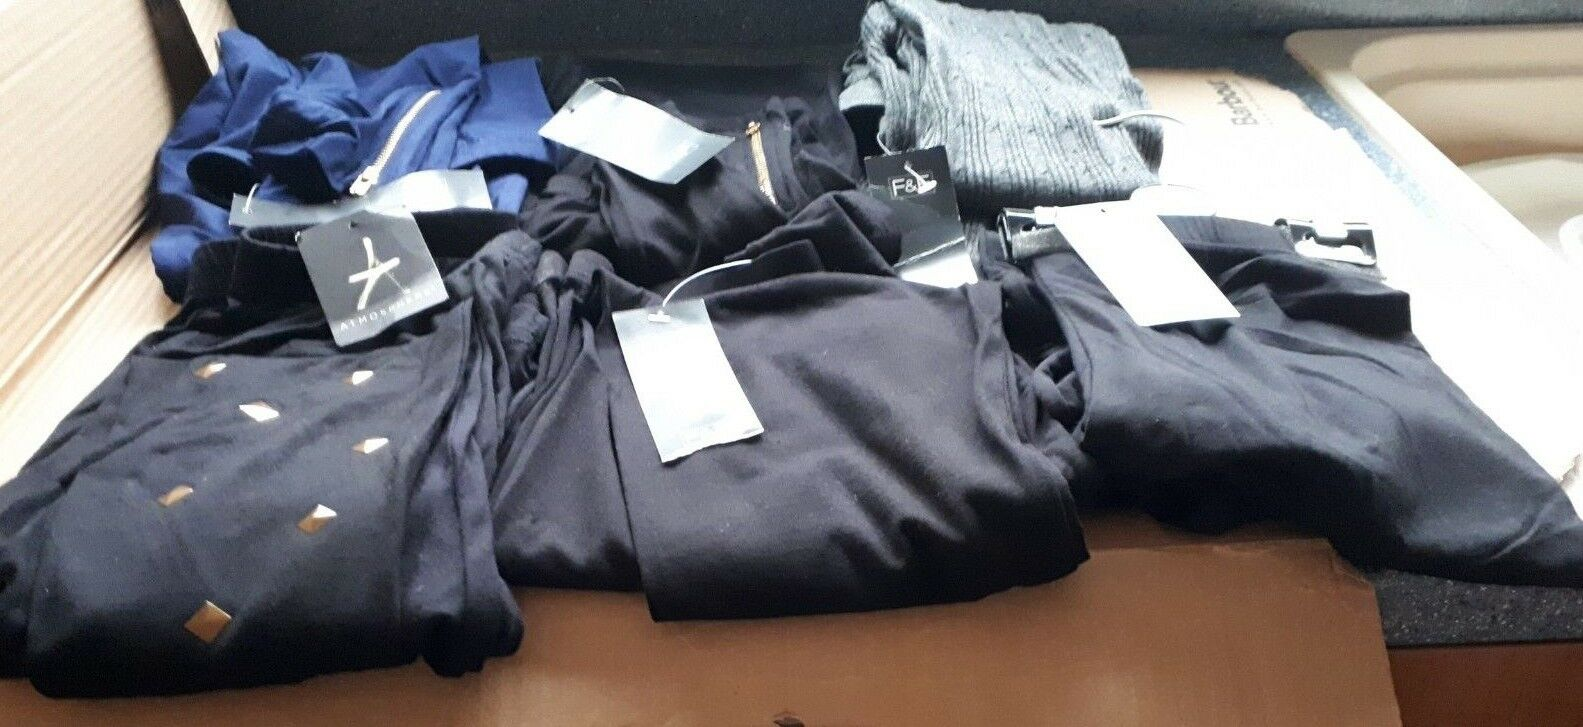 NEW 6X LEGGINGS 4XBLK  1XGREY KNITTED 1X blueE  SIZE 10 3 PRS GOT DETAIL